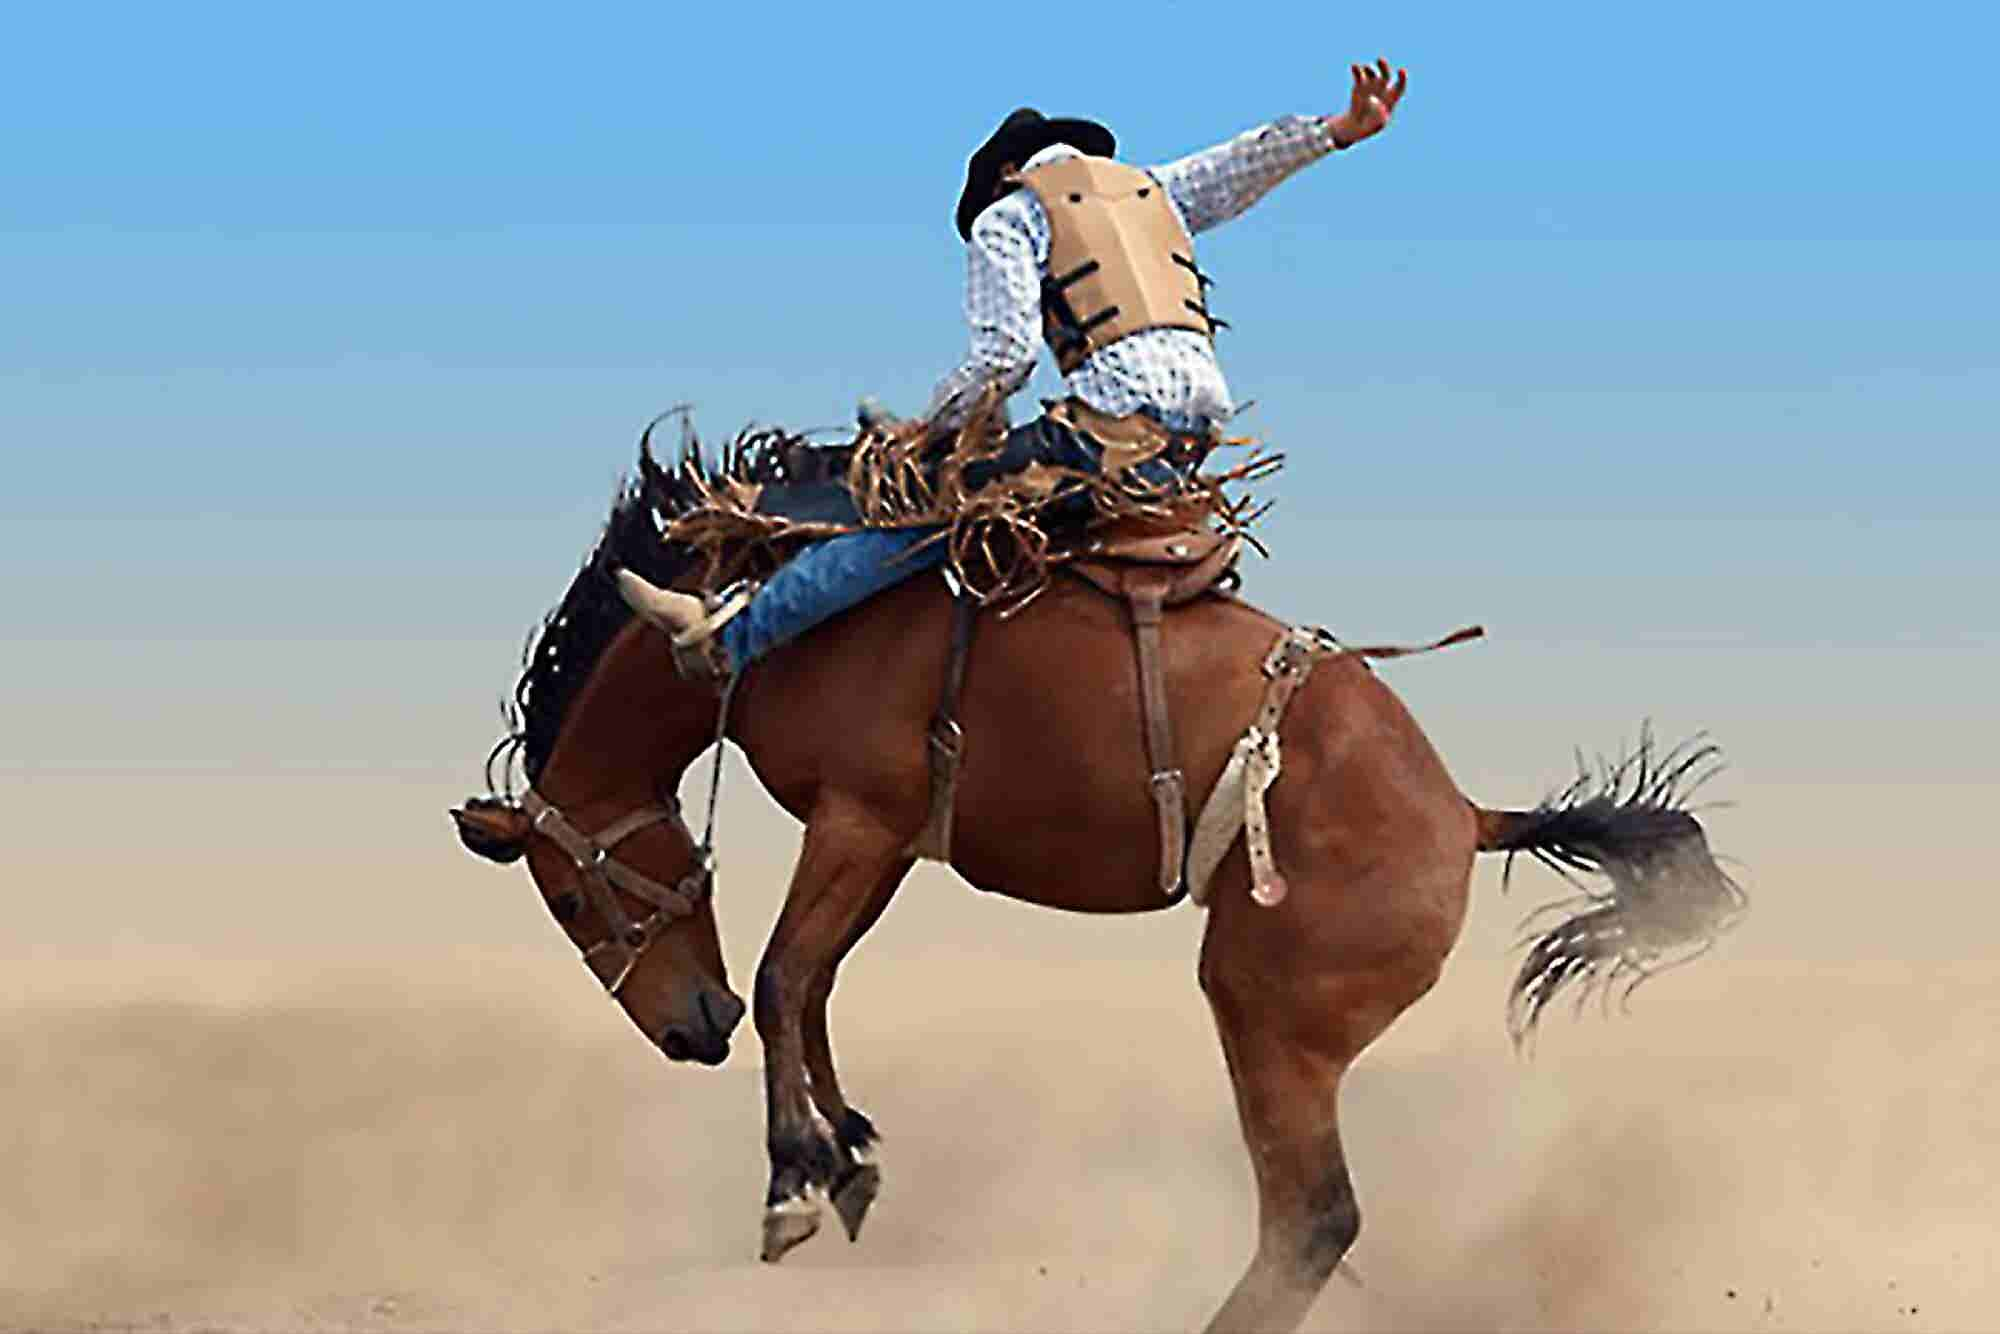 7 Truths About Risk I Learned Riding the Rodeo Circuit